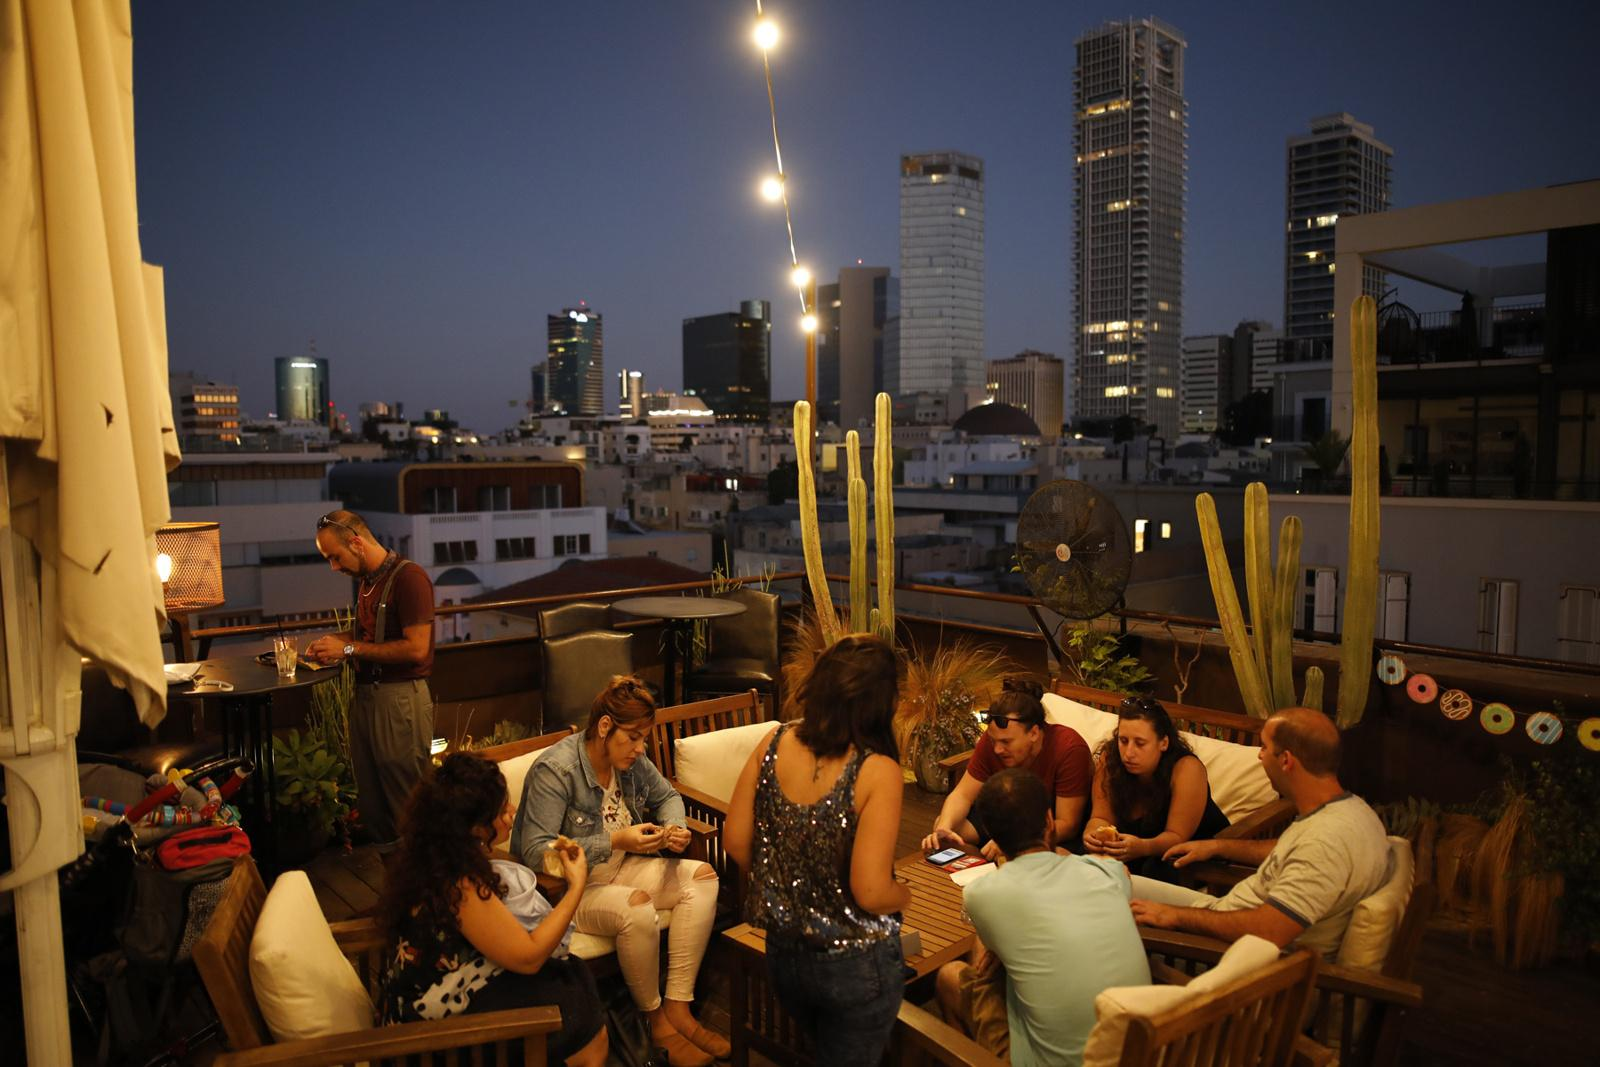 People socialize on the rooftop of the 'Brown Hotel', which serves as a public bar and space for events, October 14, 2017, Tel Aviv, Israel.